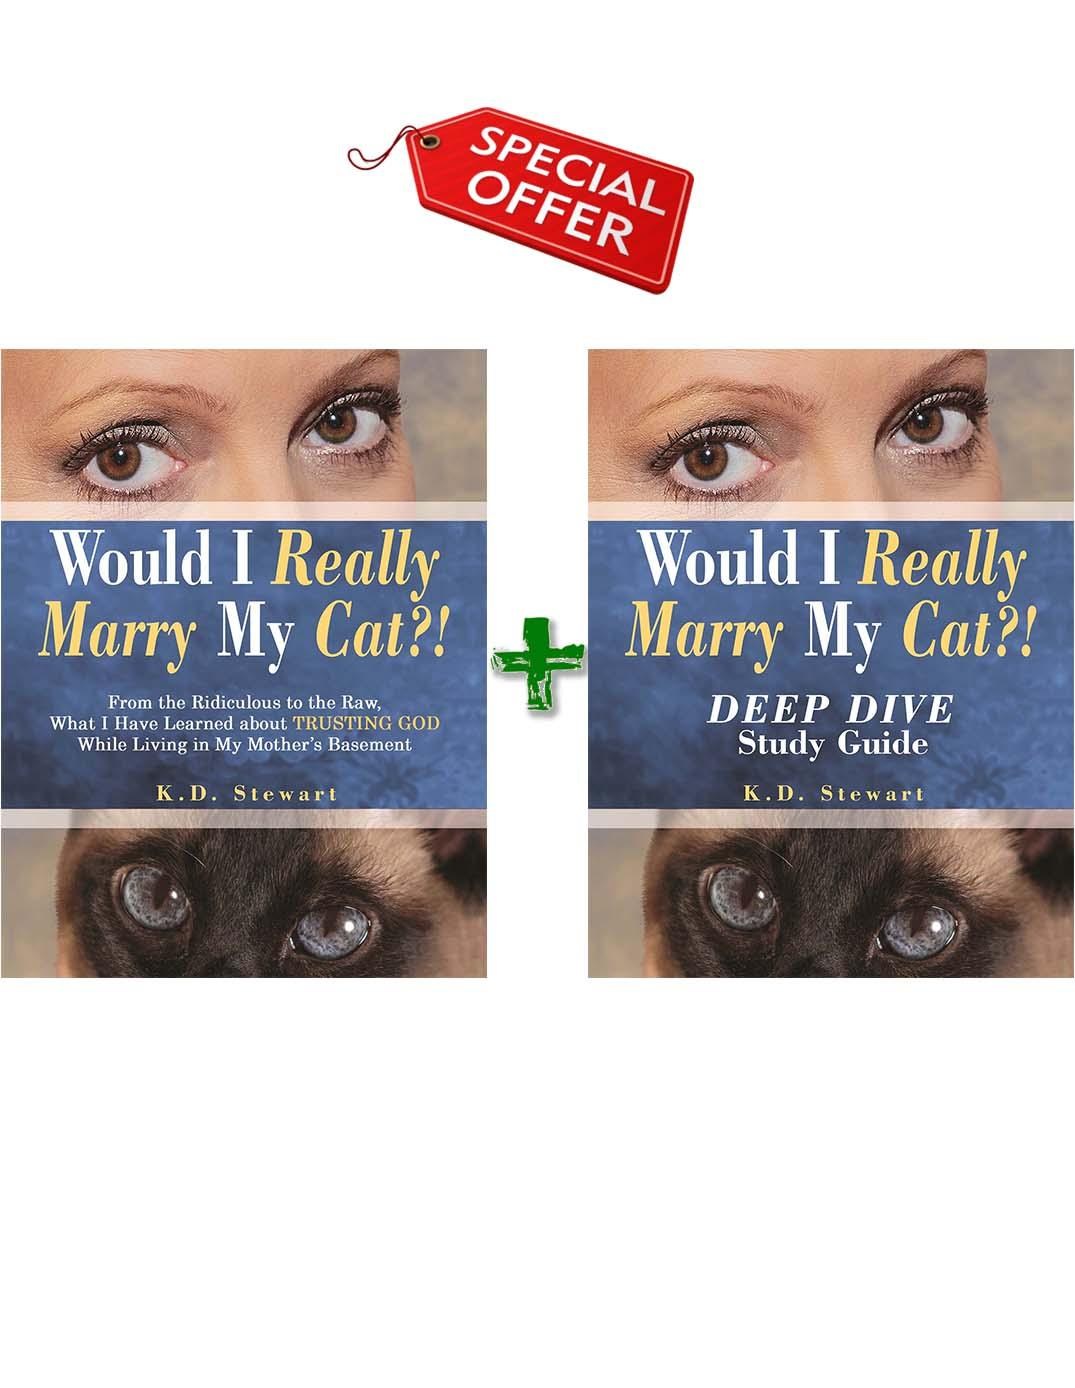 BUNDLE - Would I Really Marry My Cat?! Book & DEEP DIVE Study Guide